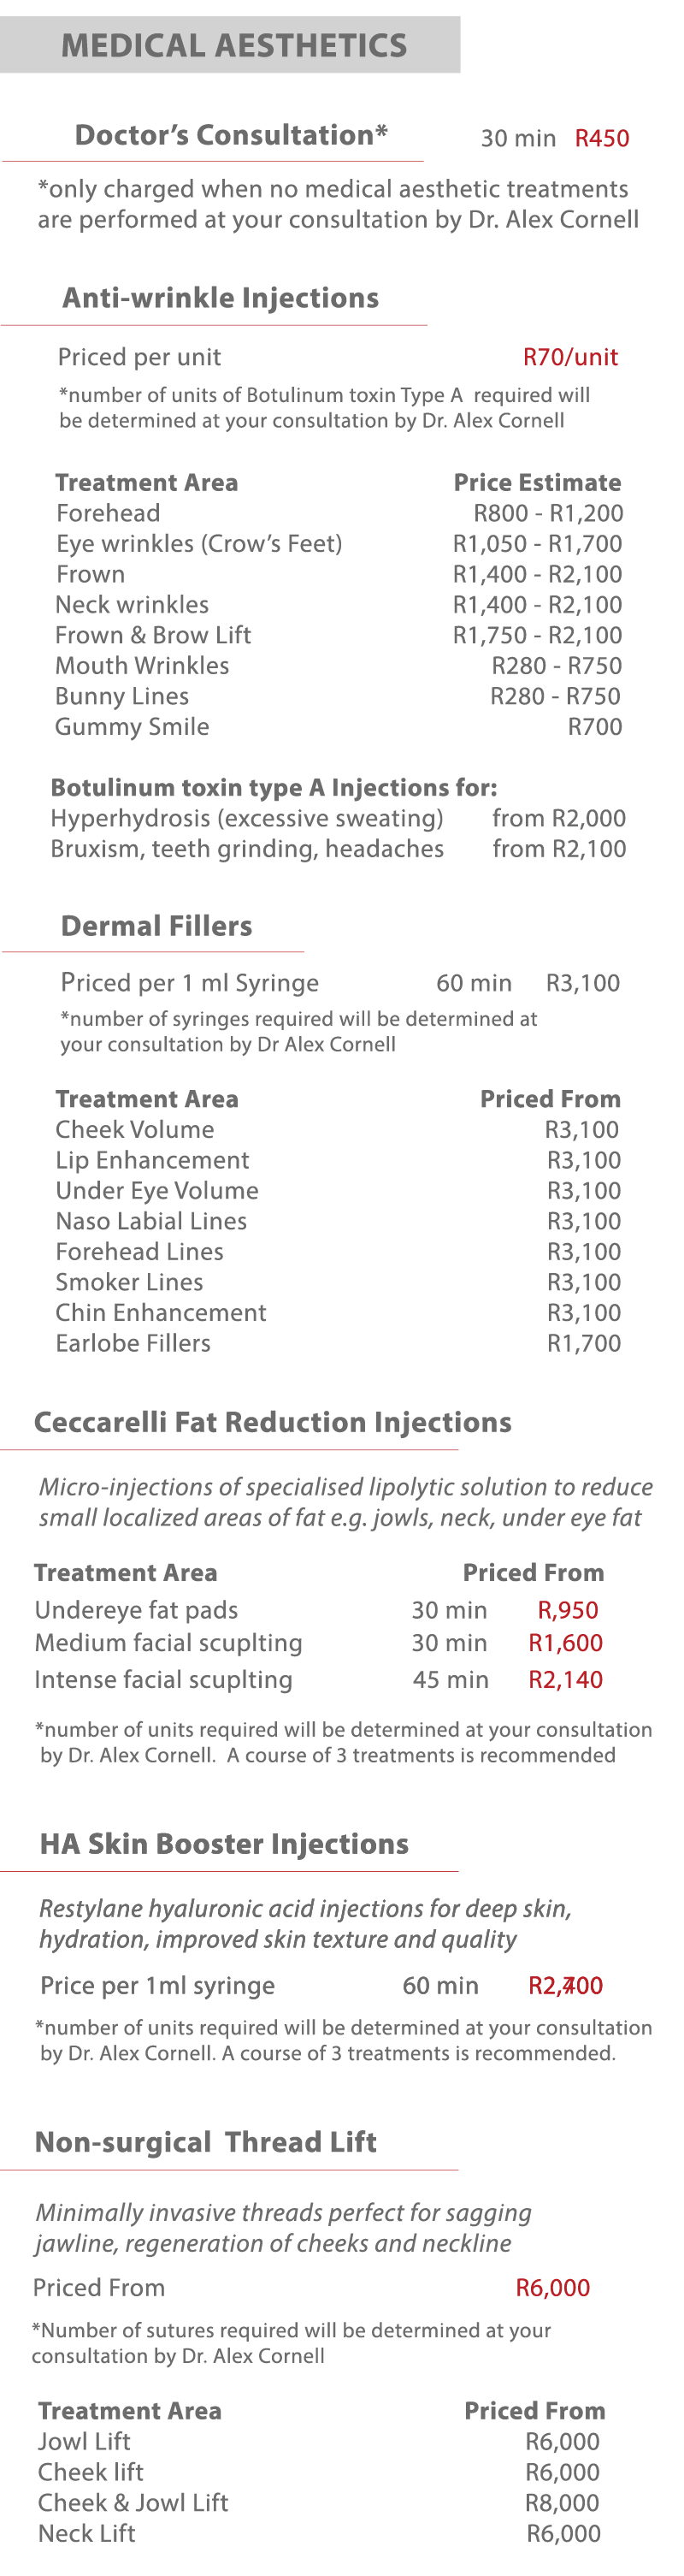 2018 medical aesthetics price list